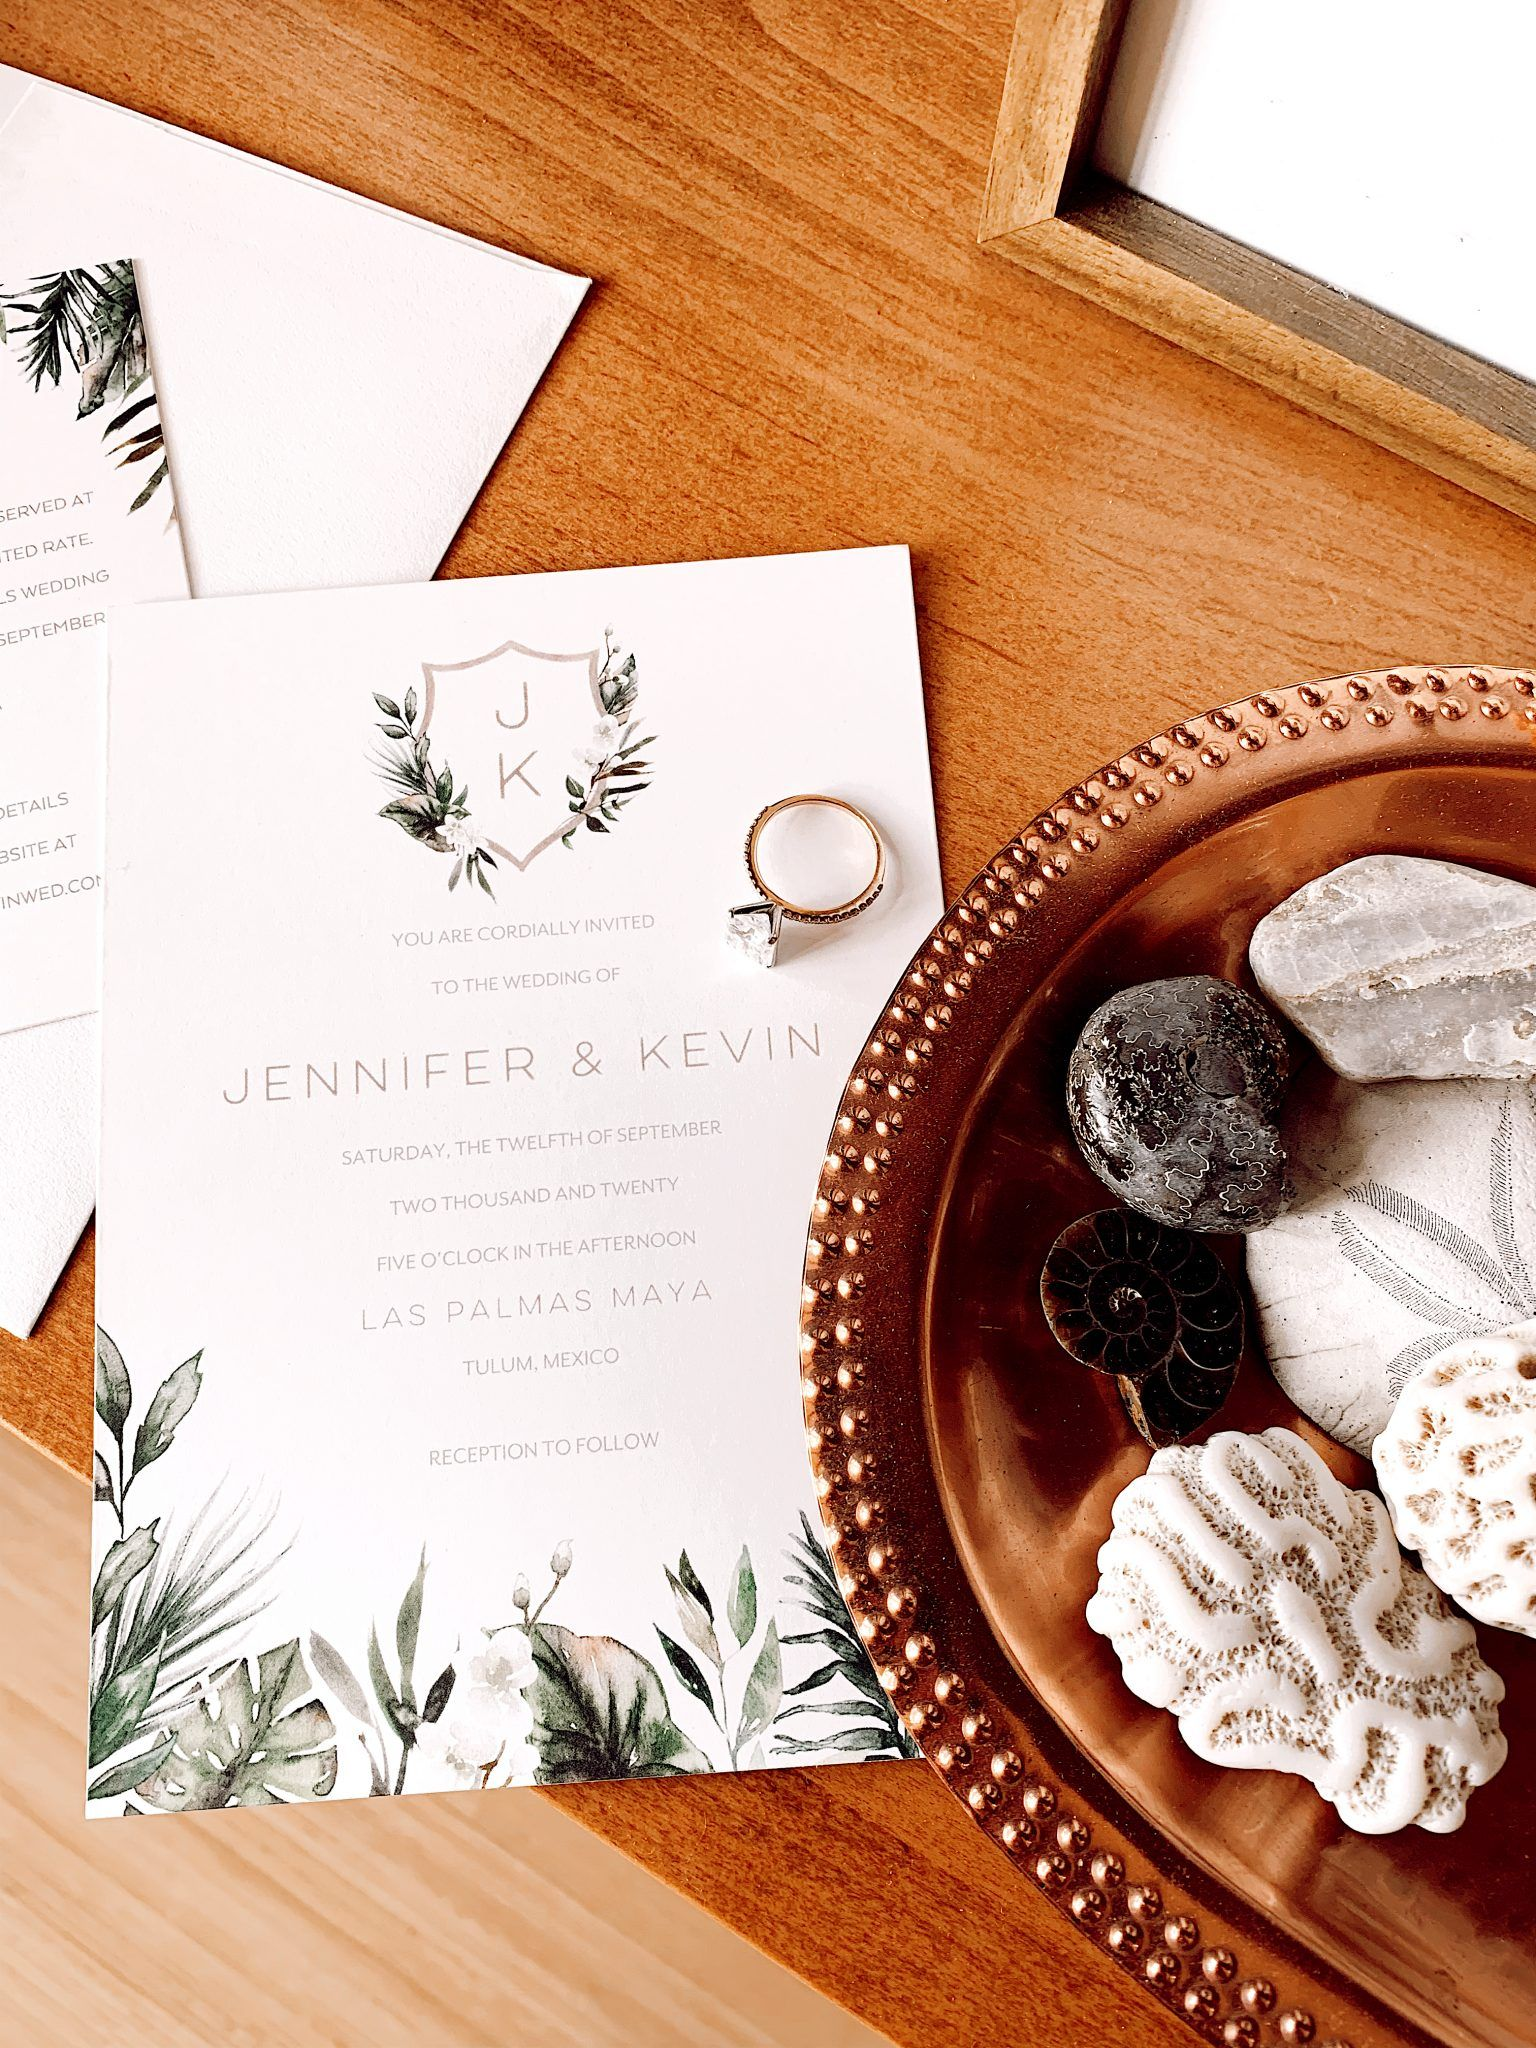 MY WEDDING INVITATIONS WITH THE WEDDING SHOP BY SHUTTERFLY